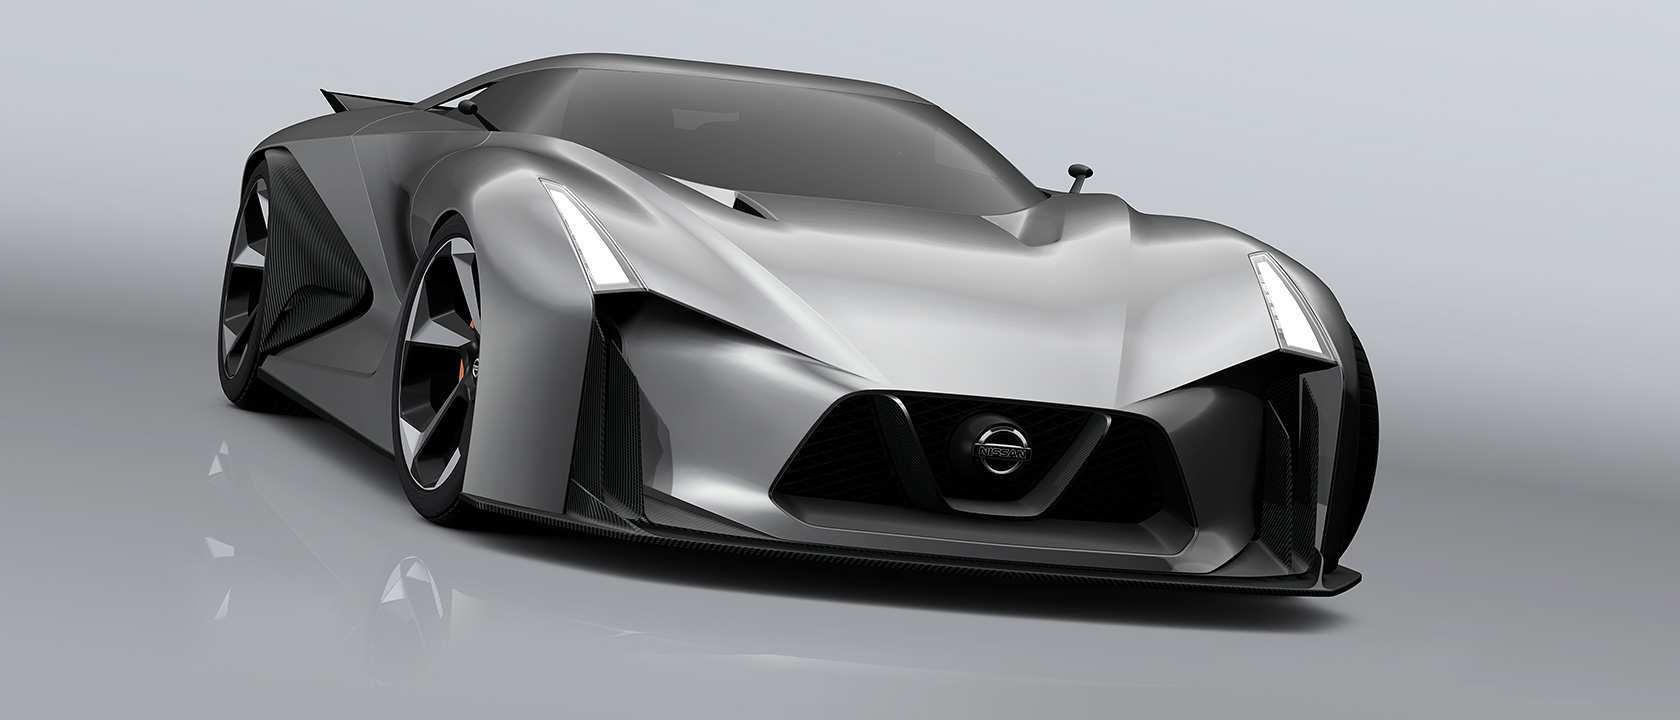 85 New Nissan Concept 2020 Pictures